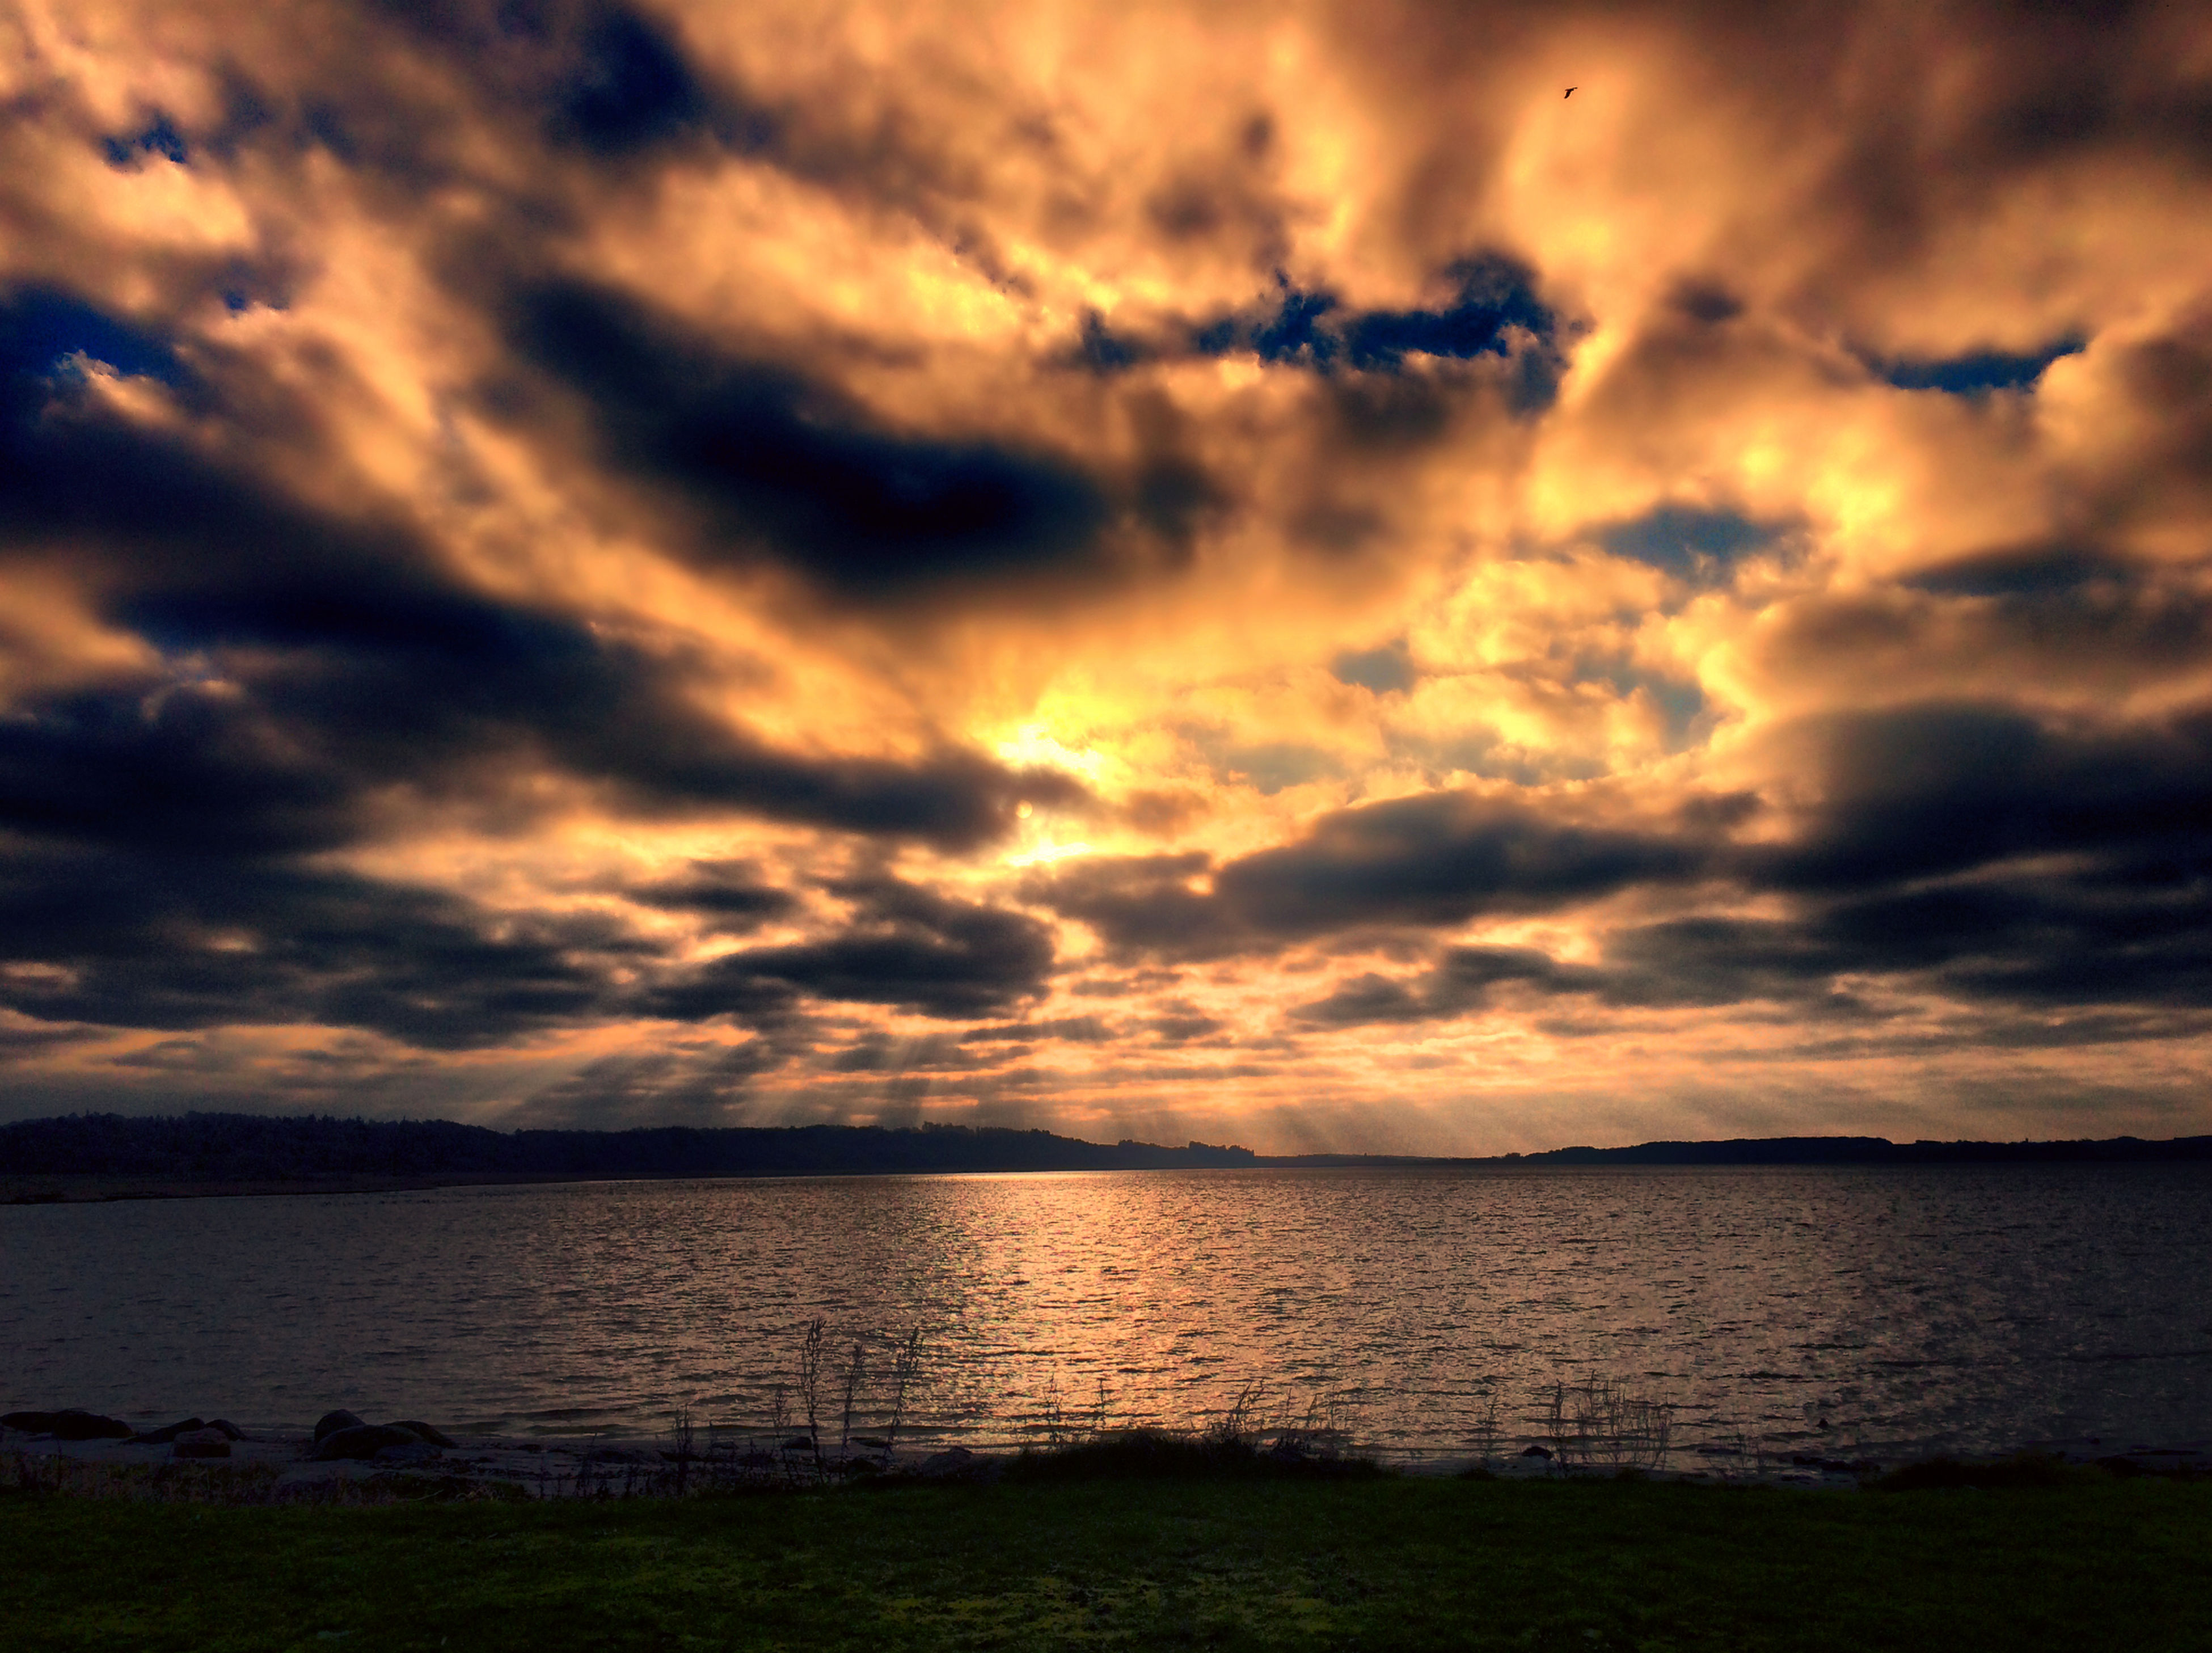 sunset, sky, tranquil scene, scenics, water, tranquility, beauty in nature, cloud - sky, cloudy, lake, nature, idyllic, cloud, orange color, reflection, dramatic sky, sea, non-urban scene, outdoors, no people